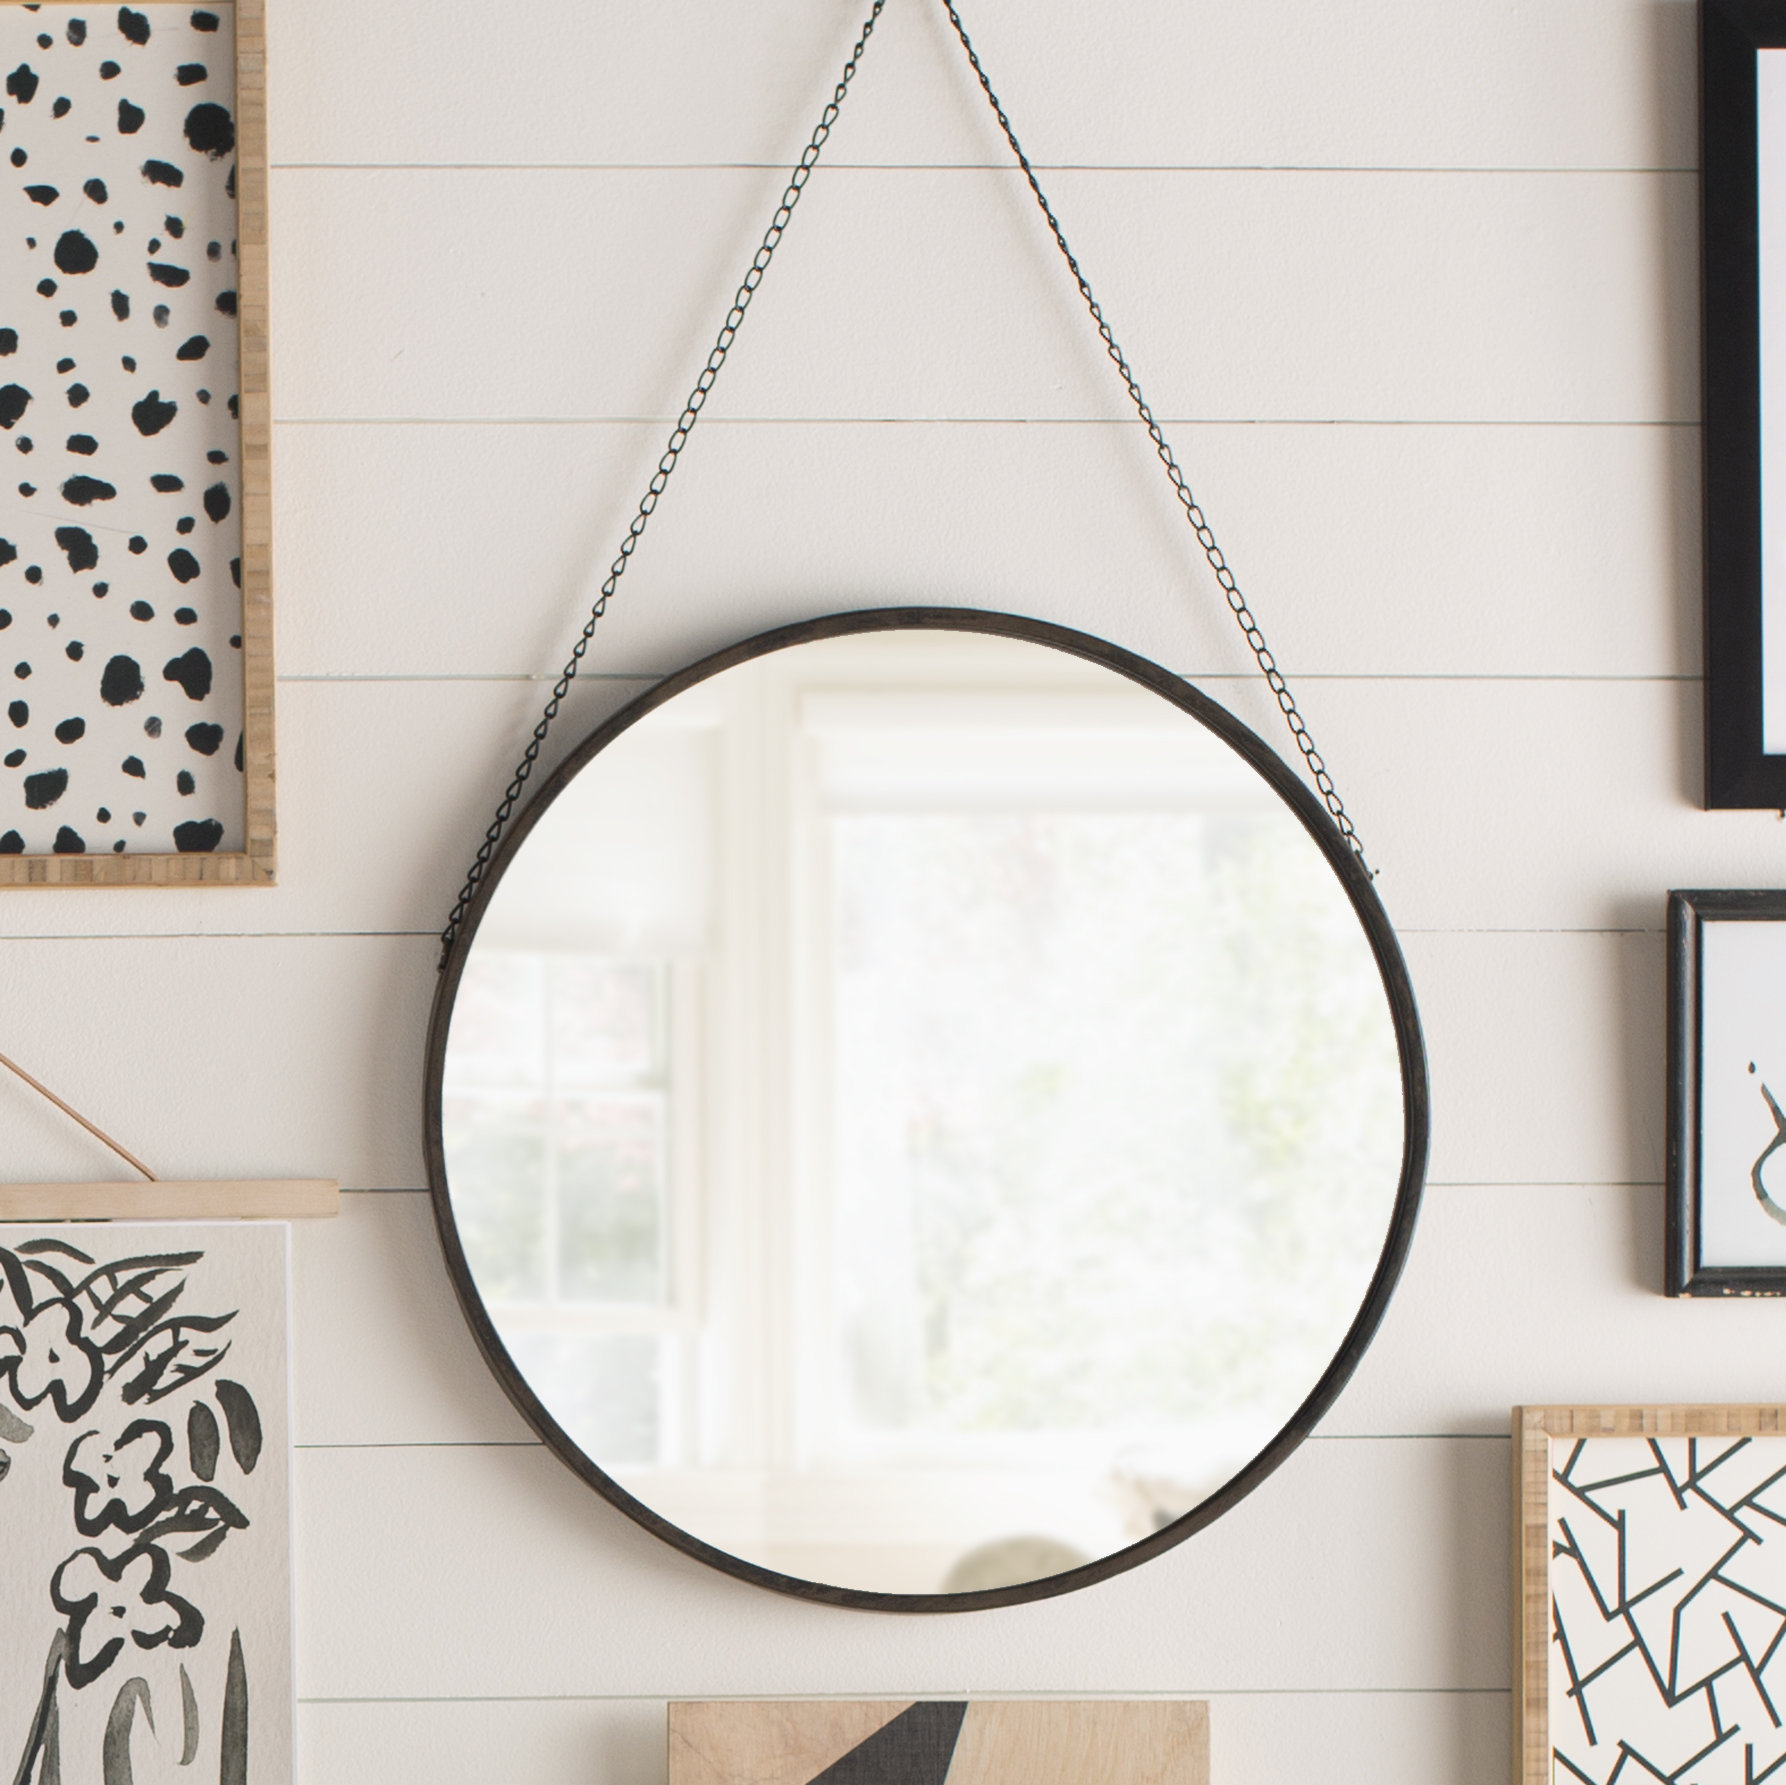 Hardison With Chain Hanger Accent Mirror with regard to Swagger Accent Wall Mirrors (Image 8 of 30)